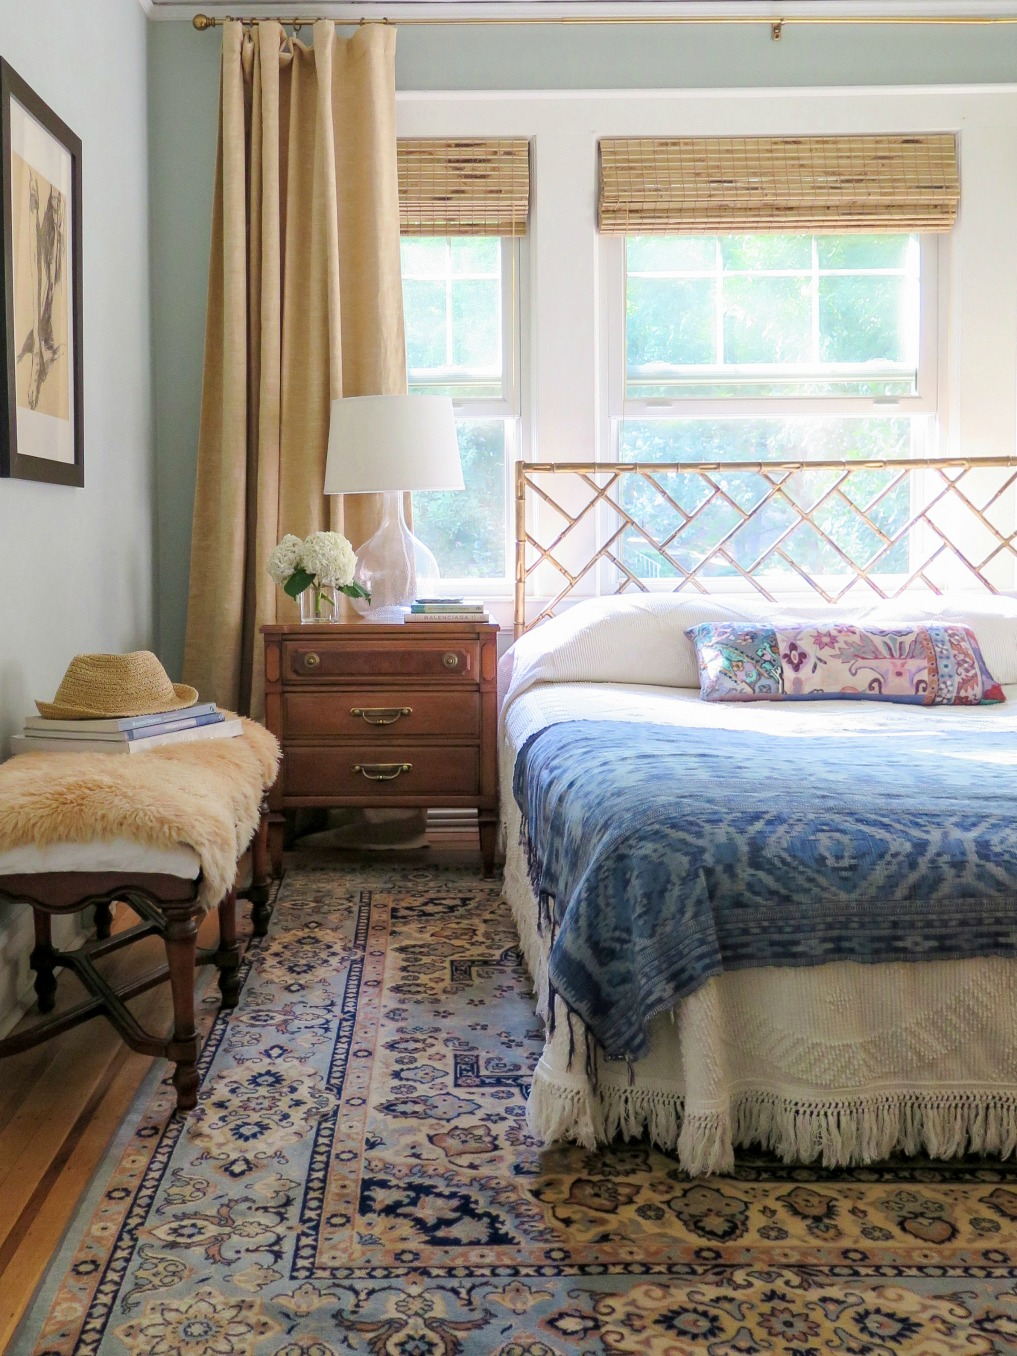 Love this boho bedroom with blue oriental rug, bamboo bed and vintage bedspread